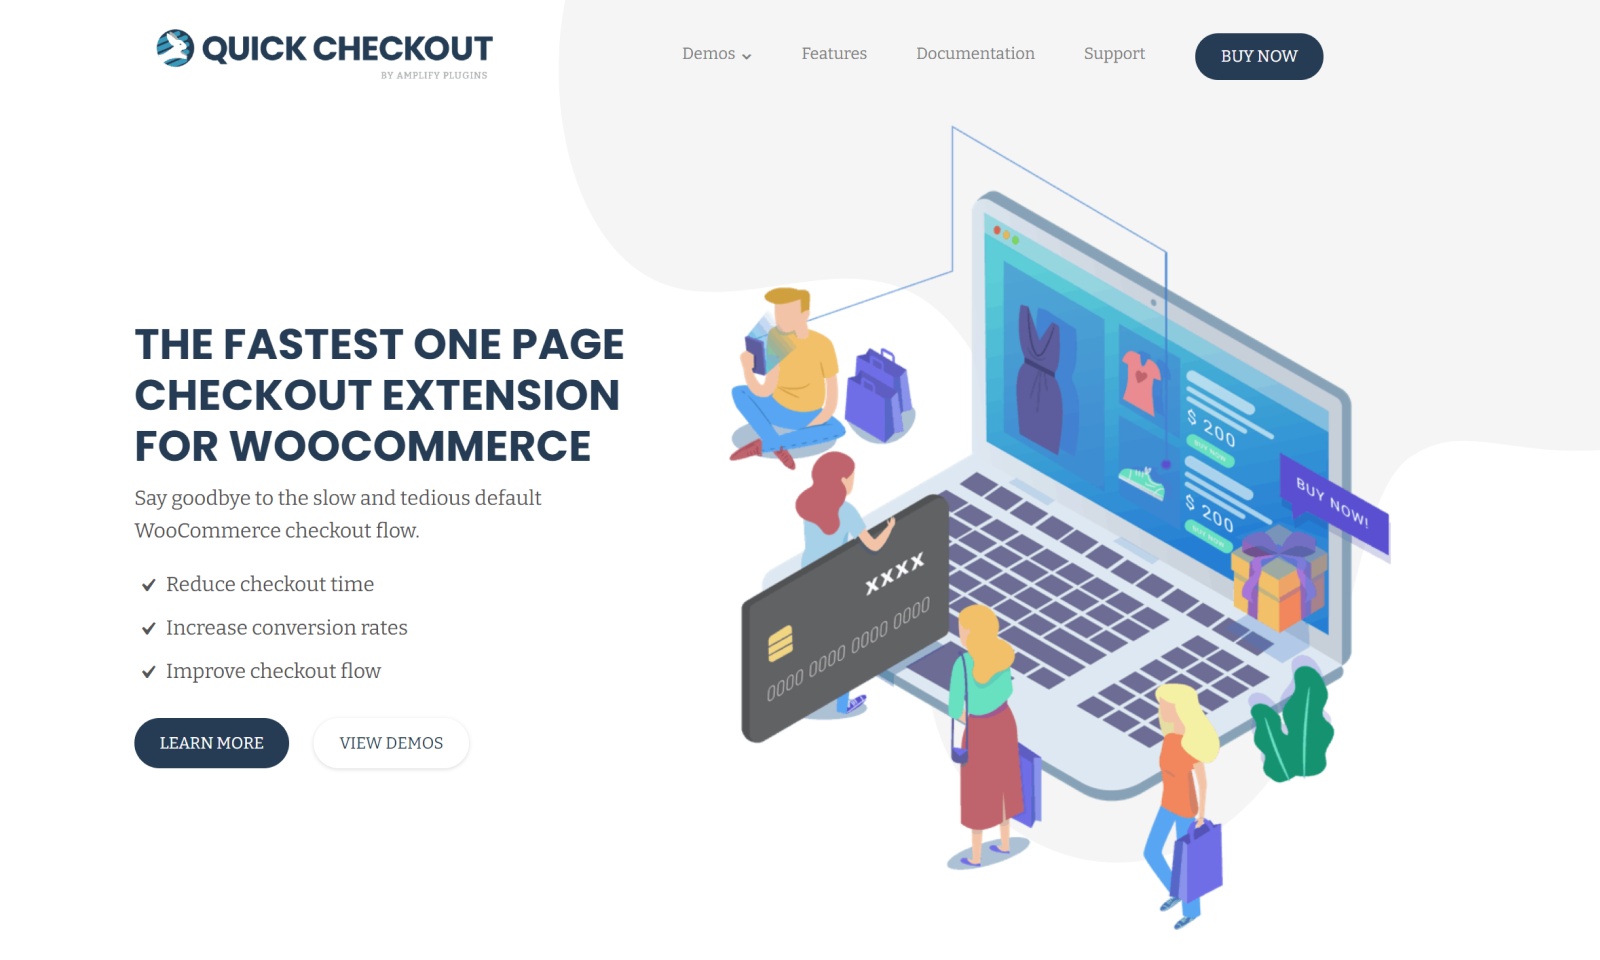 The Quick Checkout plugin is the fastest way to get your WooCommerce customer to the checkout.